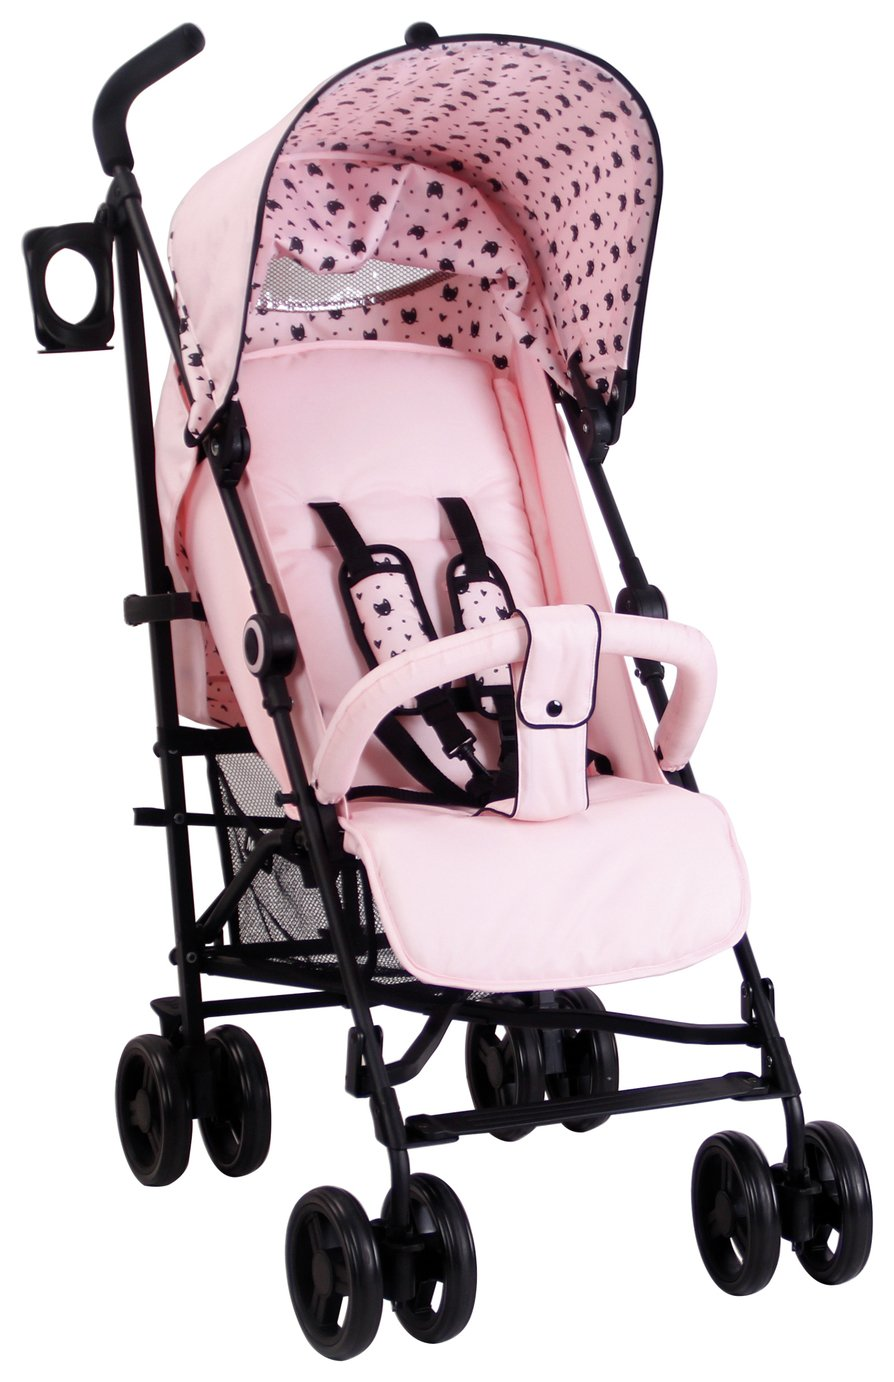 My Babiie Abbey Clancy MB02 Cats Stroller - Black